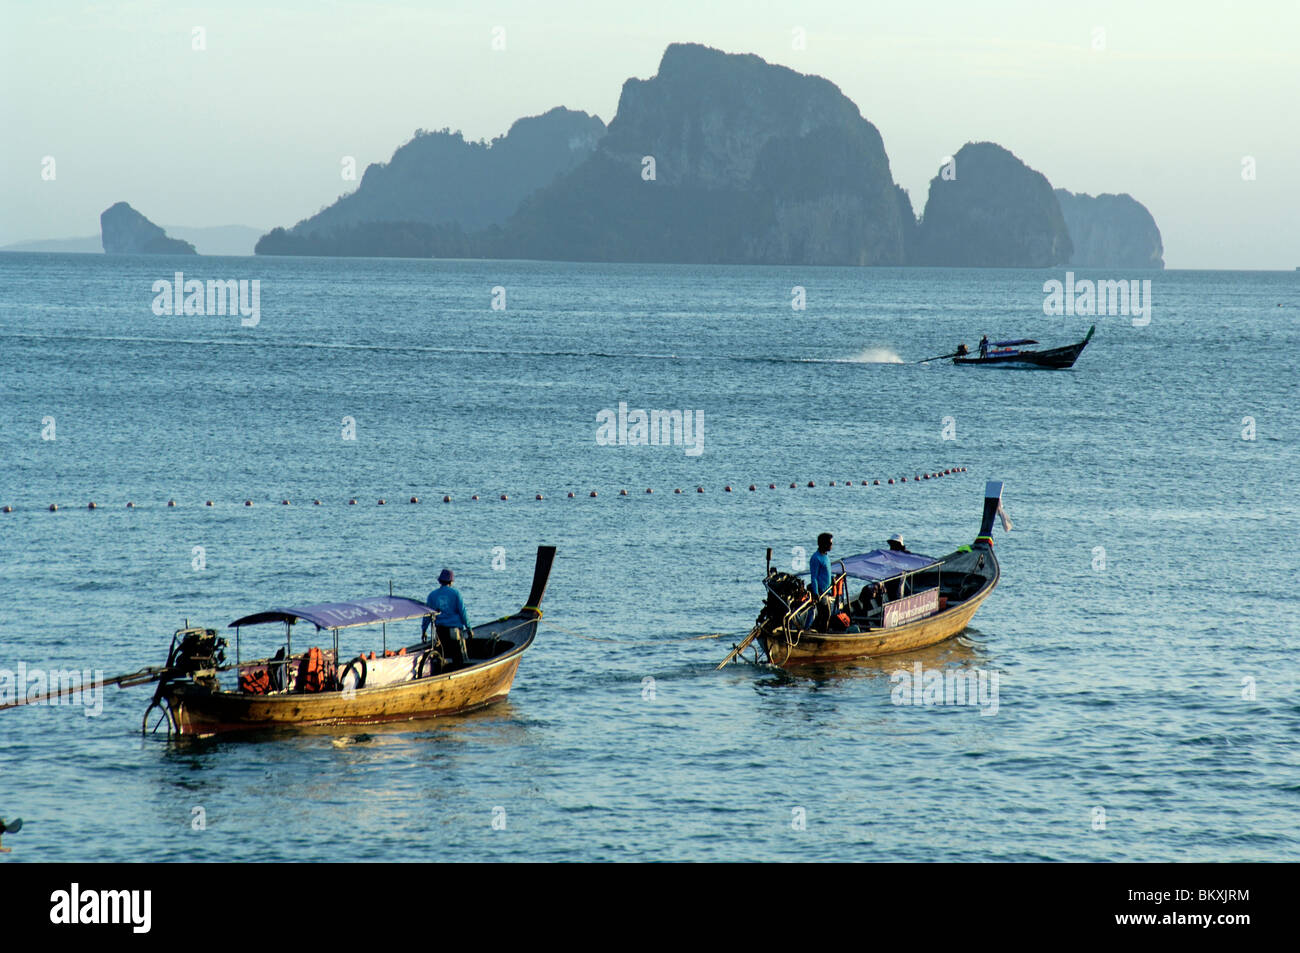 Three boat on Krabi beach at Thailand ; South East Asia - Stock Image